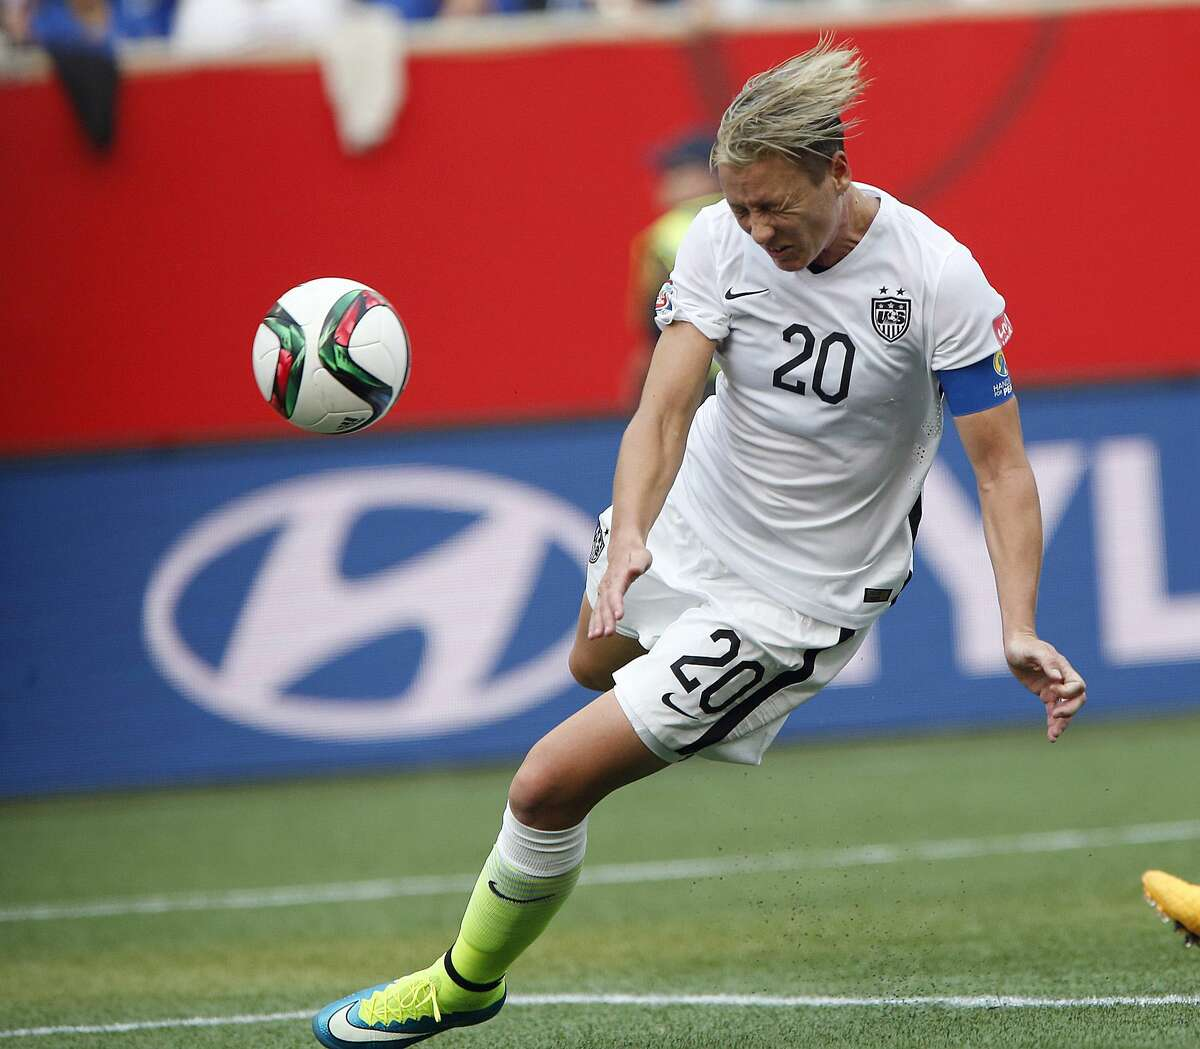 Abby Wambach says she'll embrace being used as a sub rather than a starter, if it means the U.S. wins.